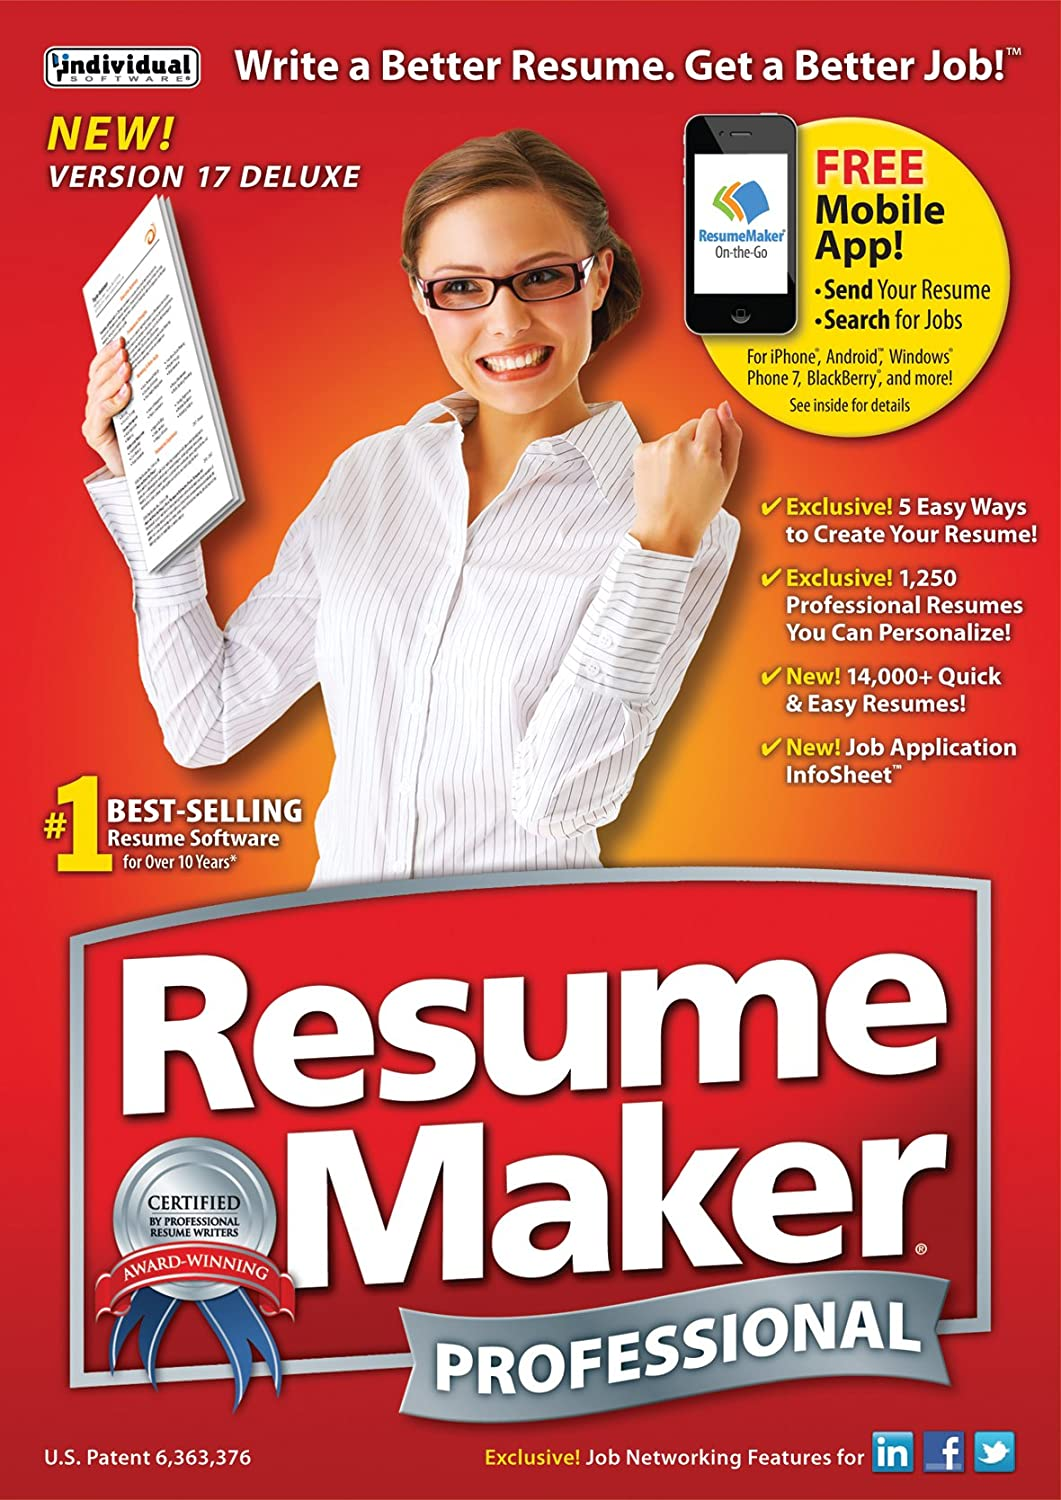 Amazon.com: ResumeMaker Professional Deluxe 17 [Download]: Software